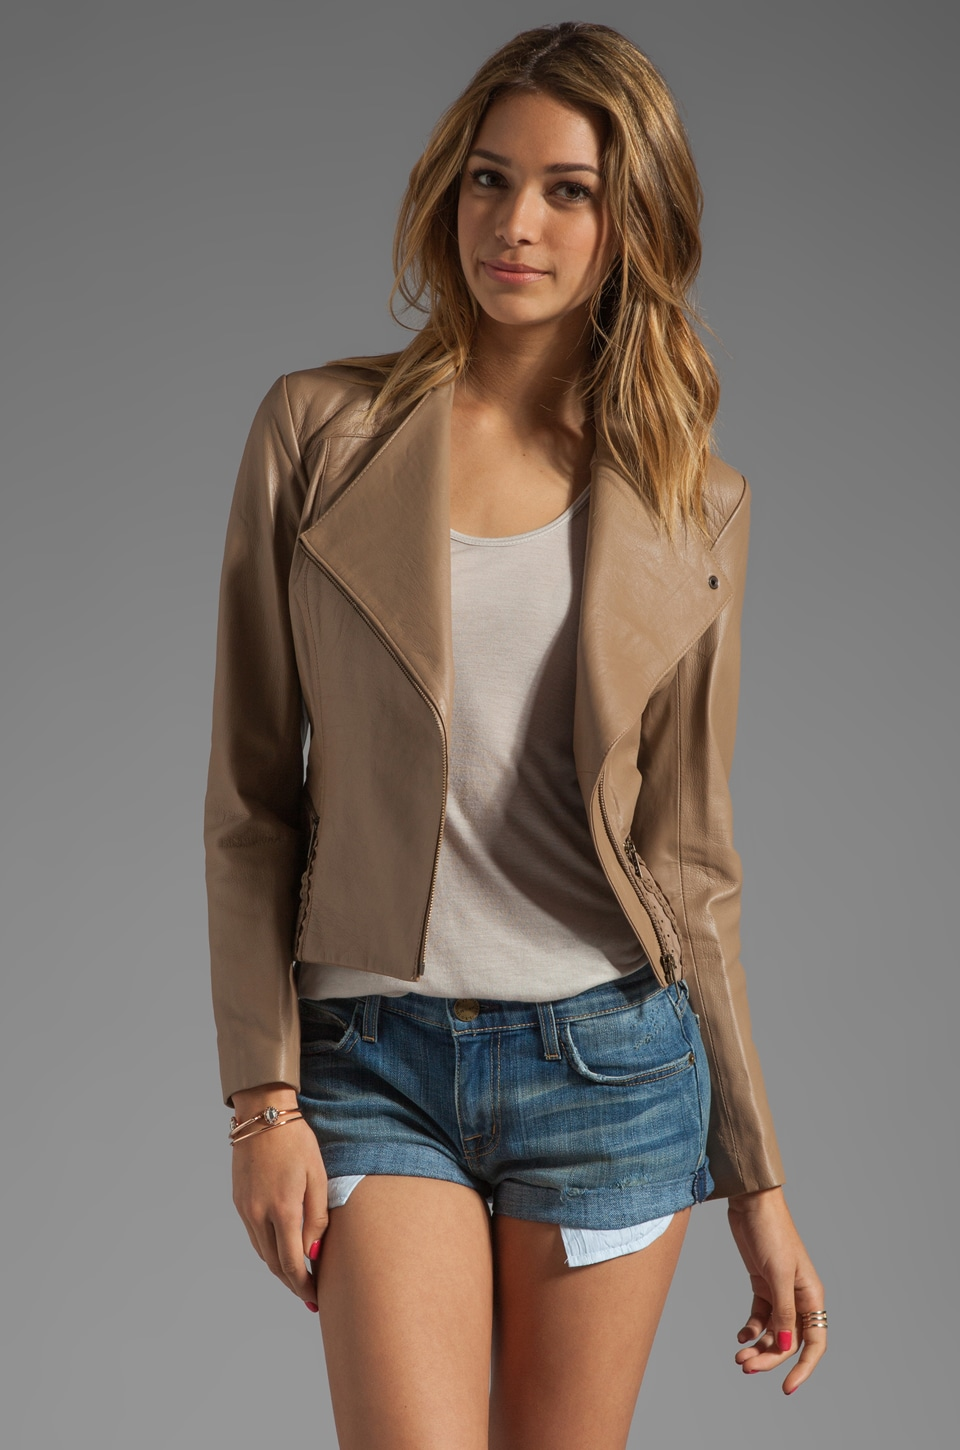 Alice by Temperley Valois Leather Jacket in Taupe